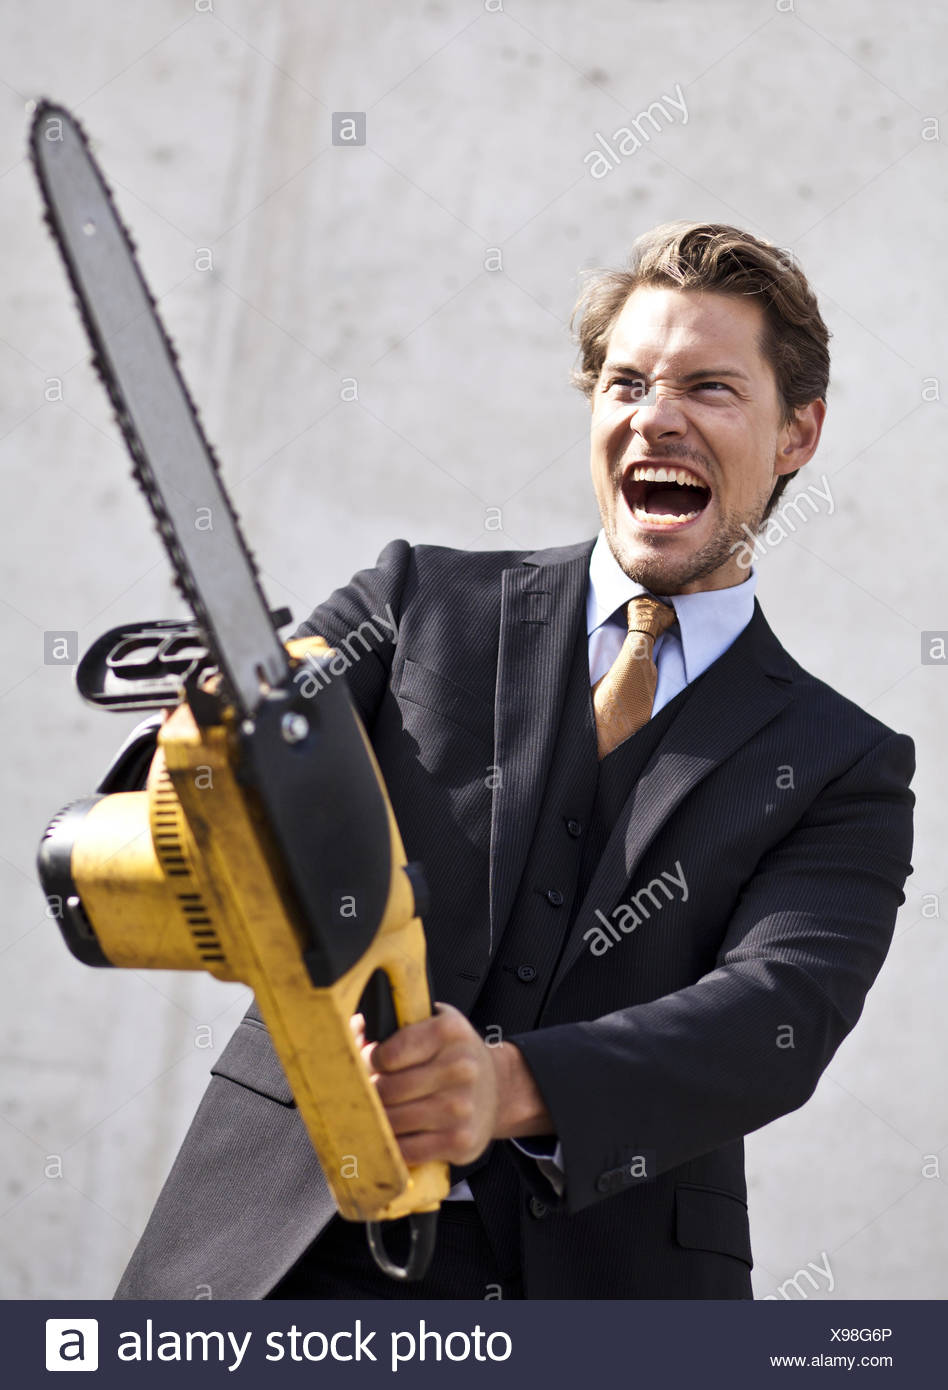 Angry businessman with blurred chainsaw - Stock Image